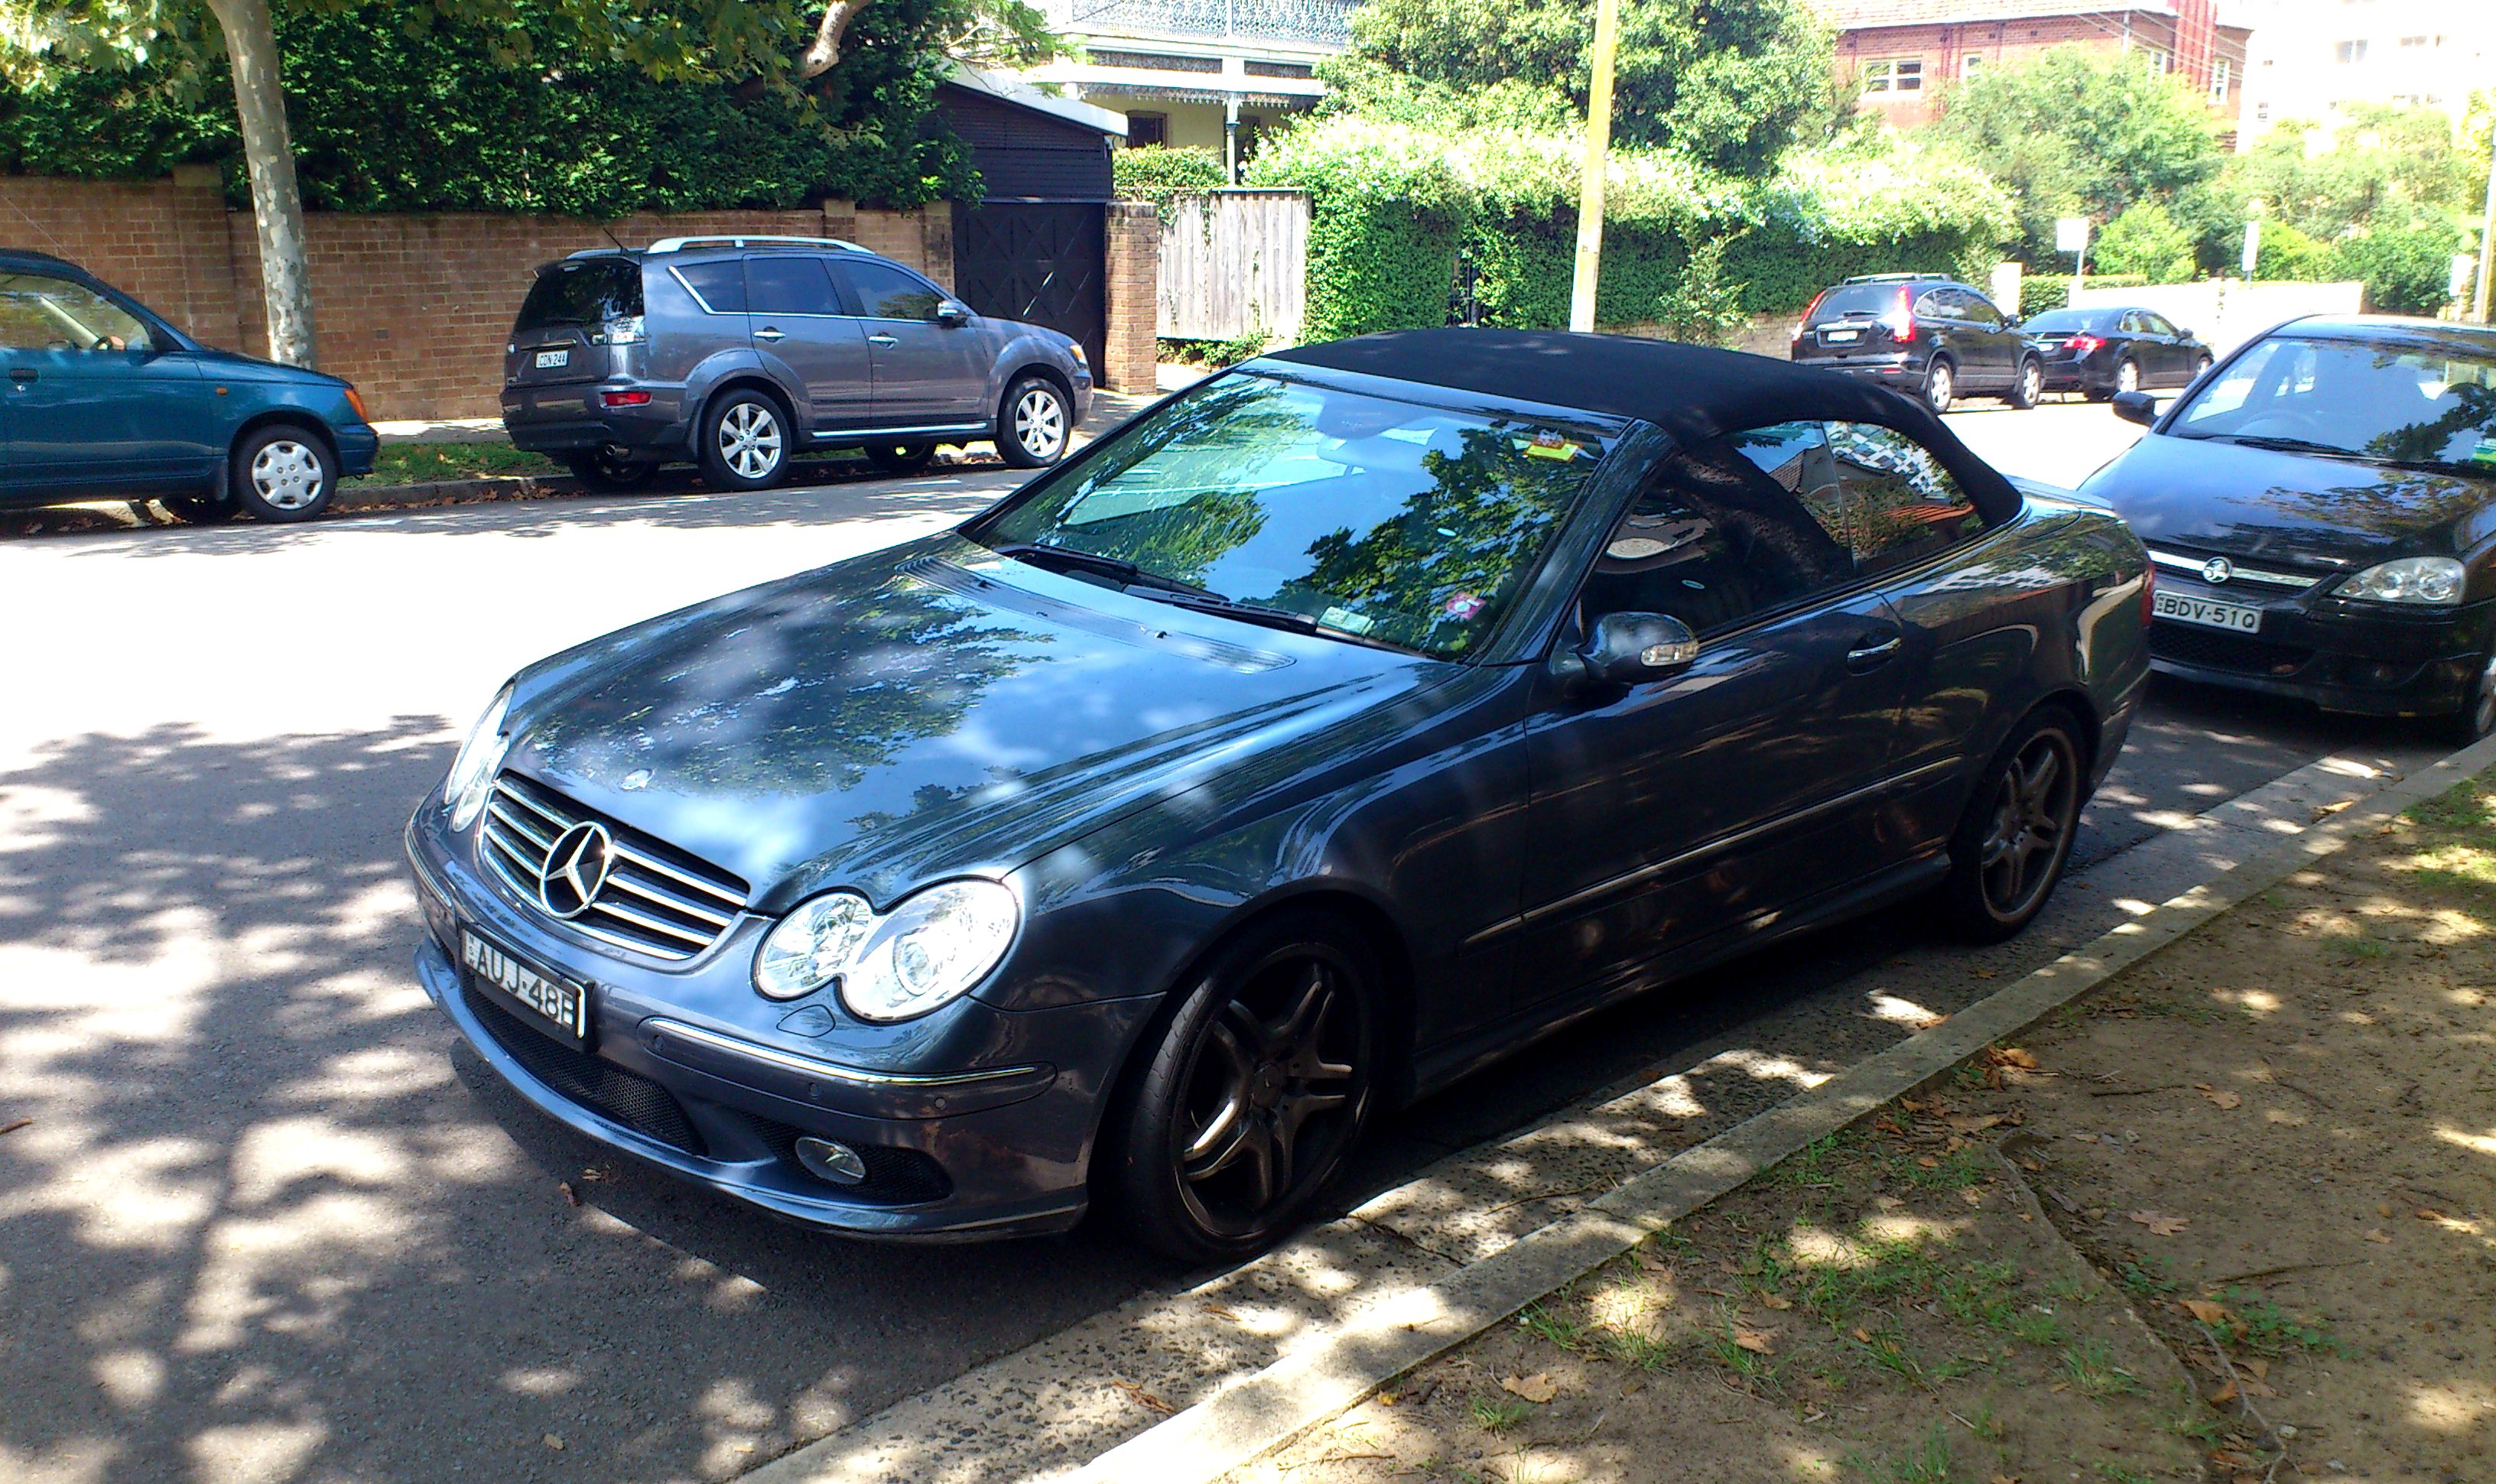 lewis amg used convertible pictures mercedes hamilton benz wallpaper edition